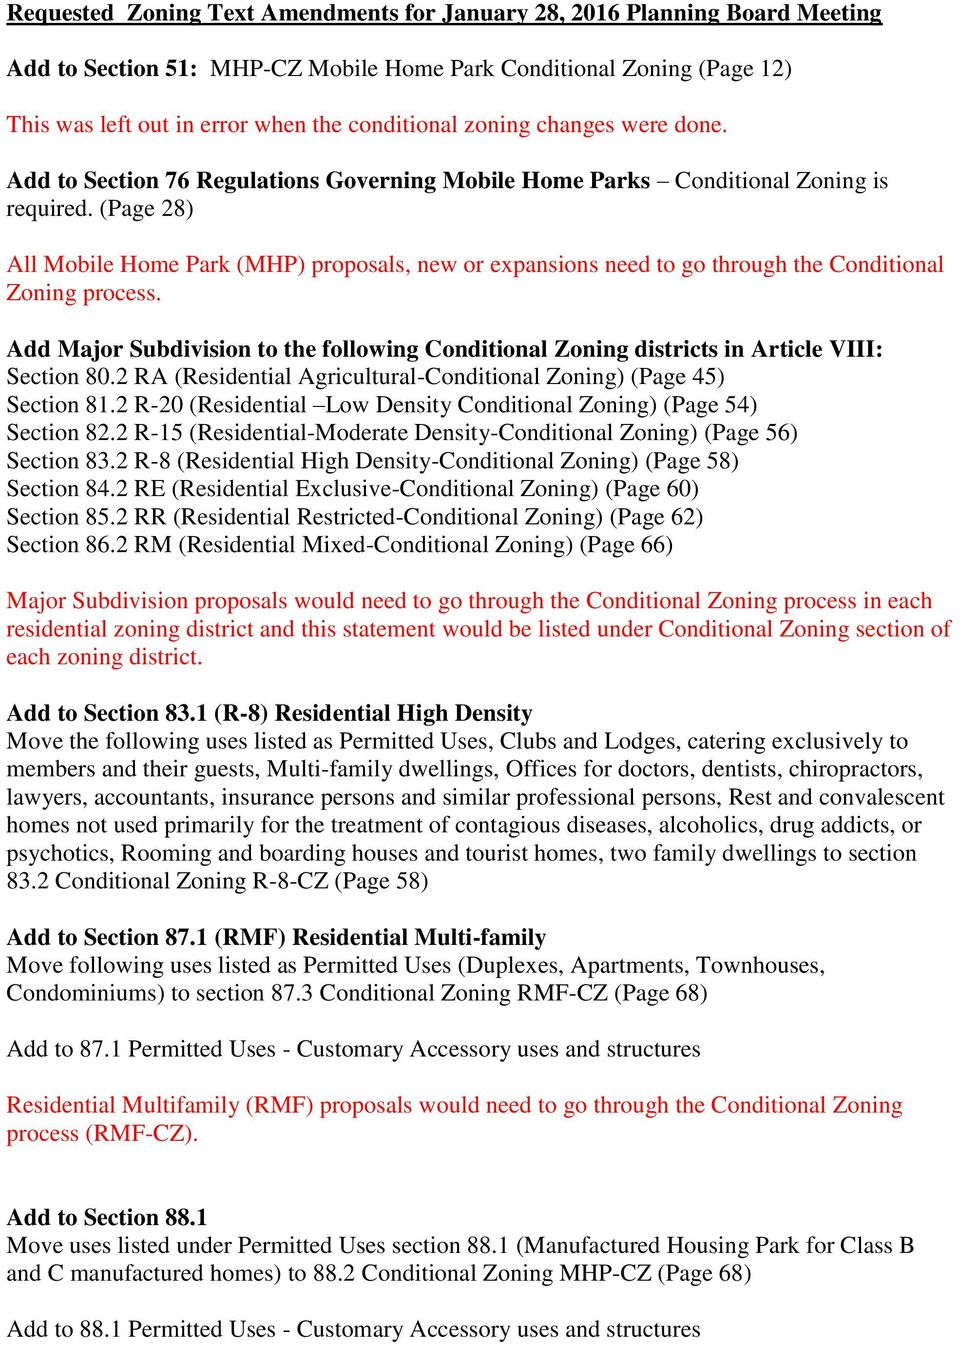 (Page 28) All Mobile Home Park (MHP) proposals, new or expansions need to go through the Conditional Zoning process.